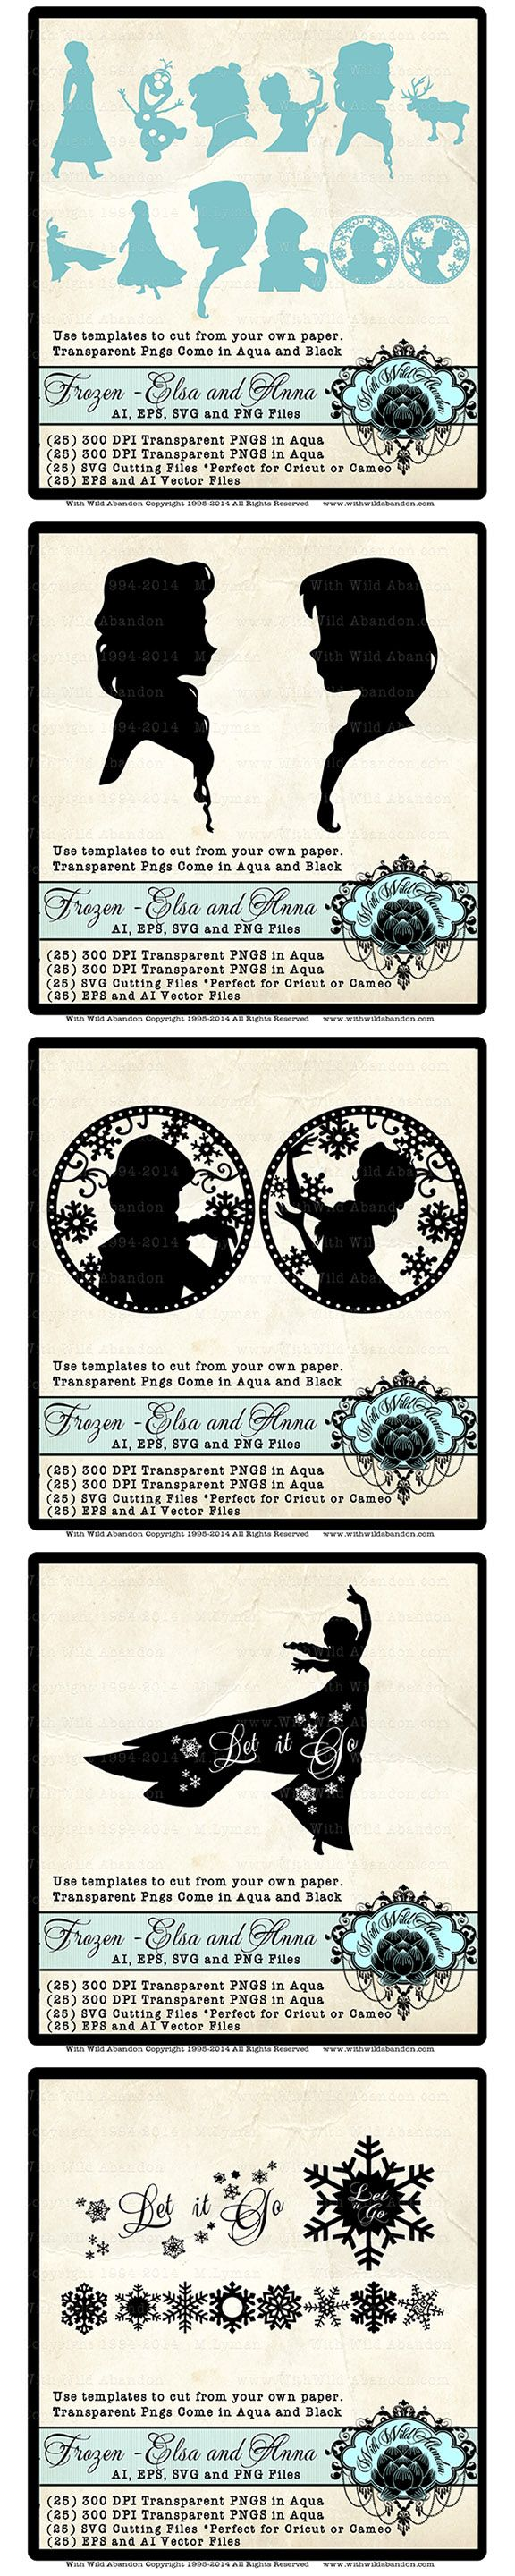 Frozen SVG, Frozen Silhouettes, Anna SVG, Elsa SVG, Anna Silhouette, Elsa Silhouette, Vector, Princess SVG, png, ai, eps Total 25 Frozen images.are solid black in color, 300 DPI pngs. Total 25 Frozen images.are solid Aqua in color, 300 DPI pngs. Elsa, Anna, Olaf, Kristof, Sven. Suitable for printing as many times as you like. (25) AI and EPS Illustrator vector files. These can be resized to any size. (25) SVG Cutting files for use with Cricket Explore or Cameo Silhouette